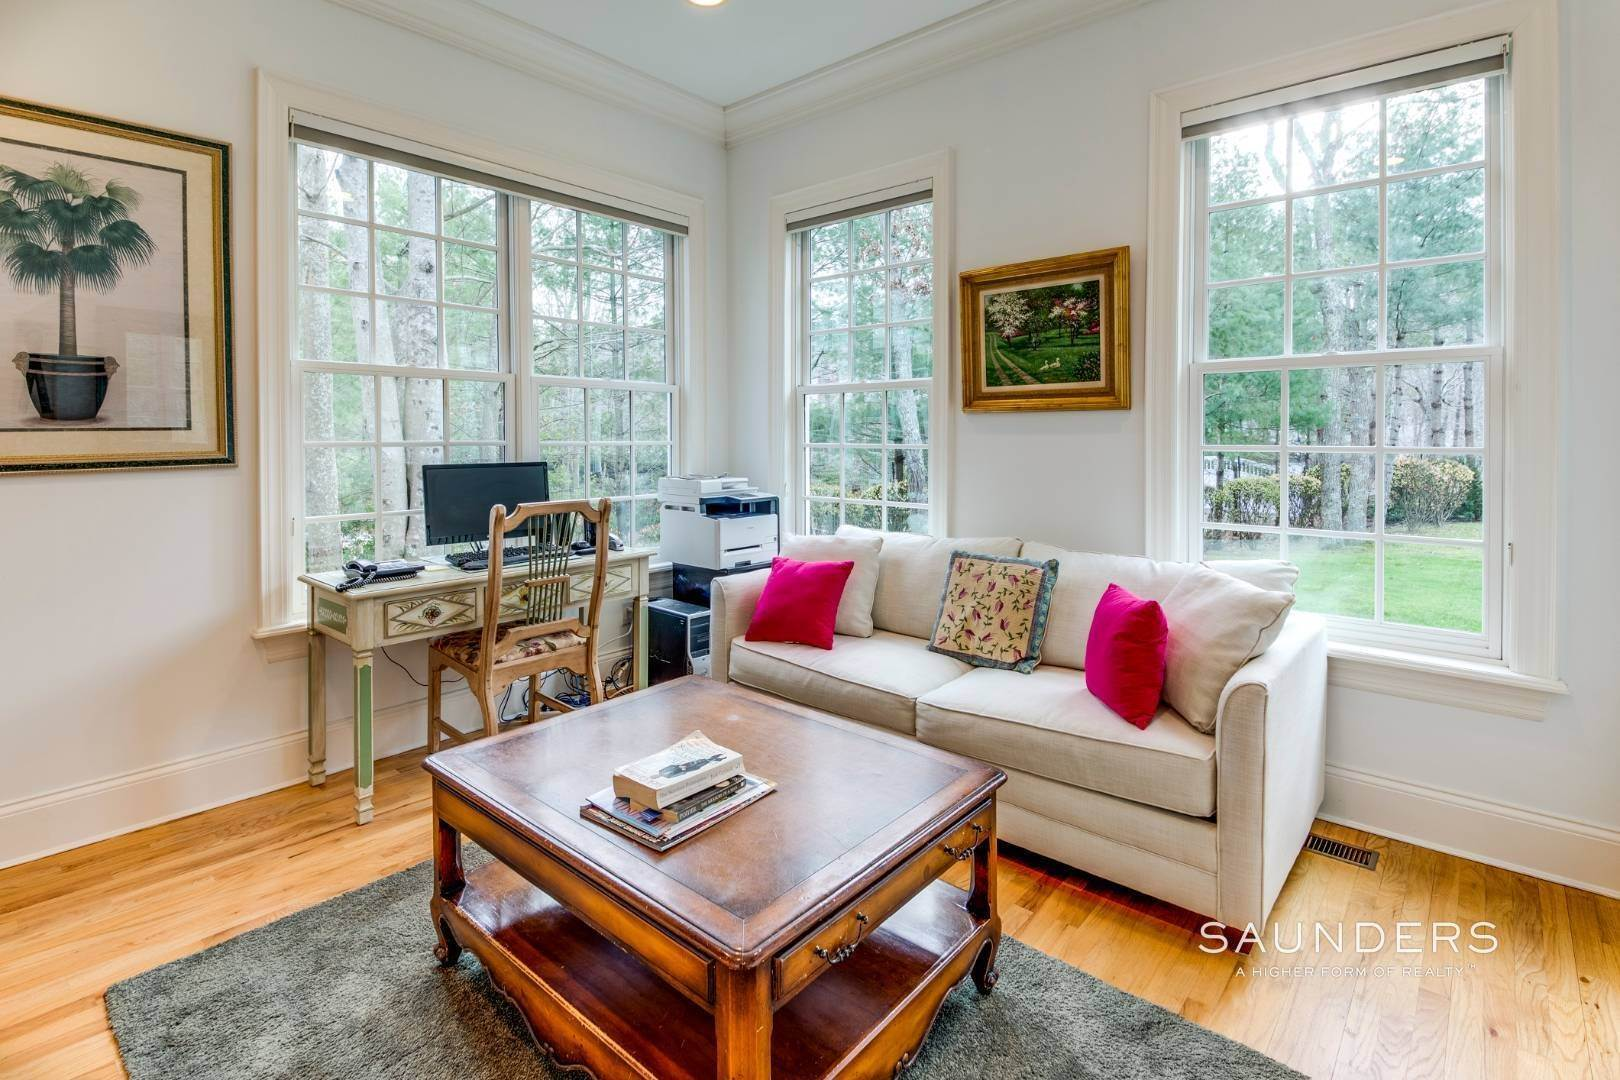 13. Single Family Homes for Sale at Builder's Own, Hamptons Traditional 33 Cedar Trails, East Hampton, East Hampton Town, NY 11937